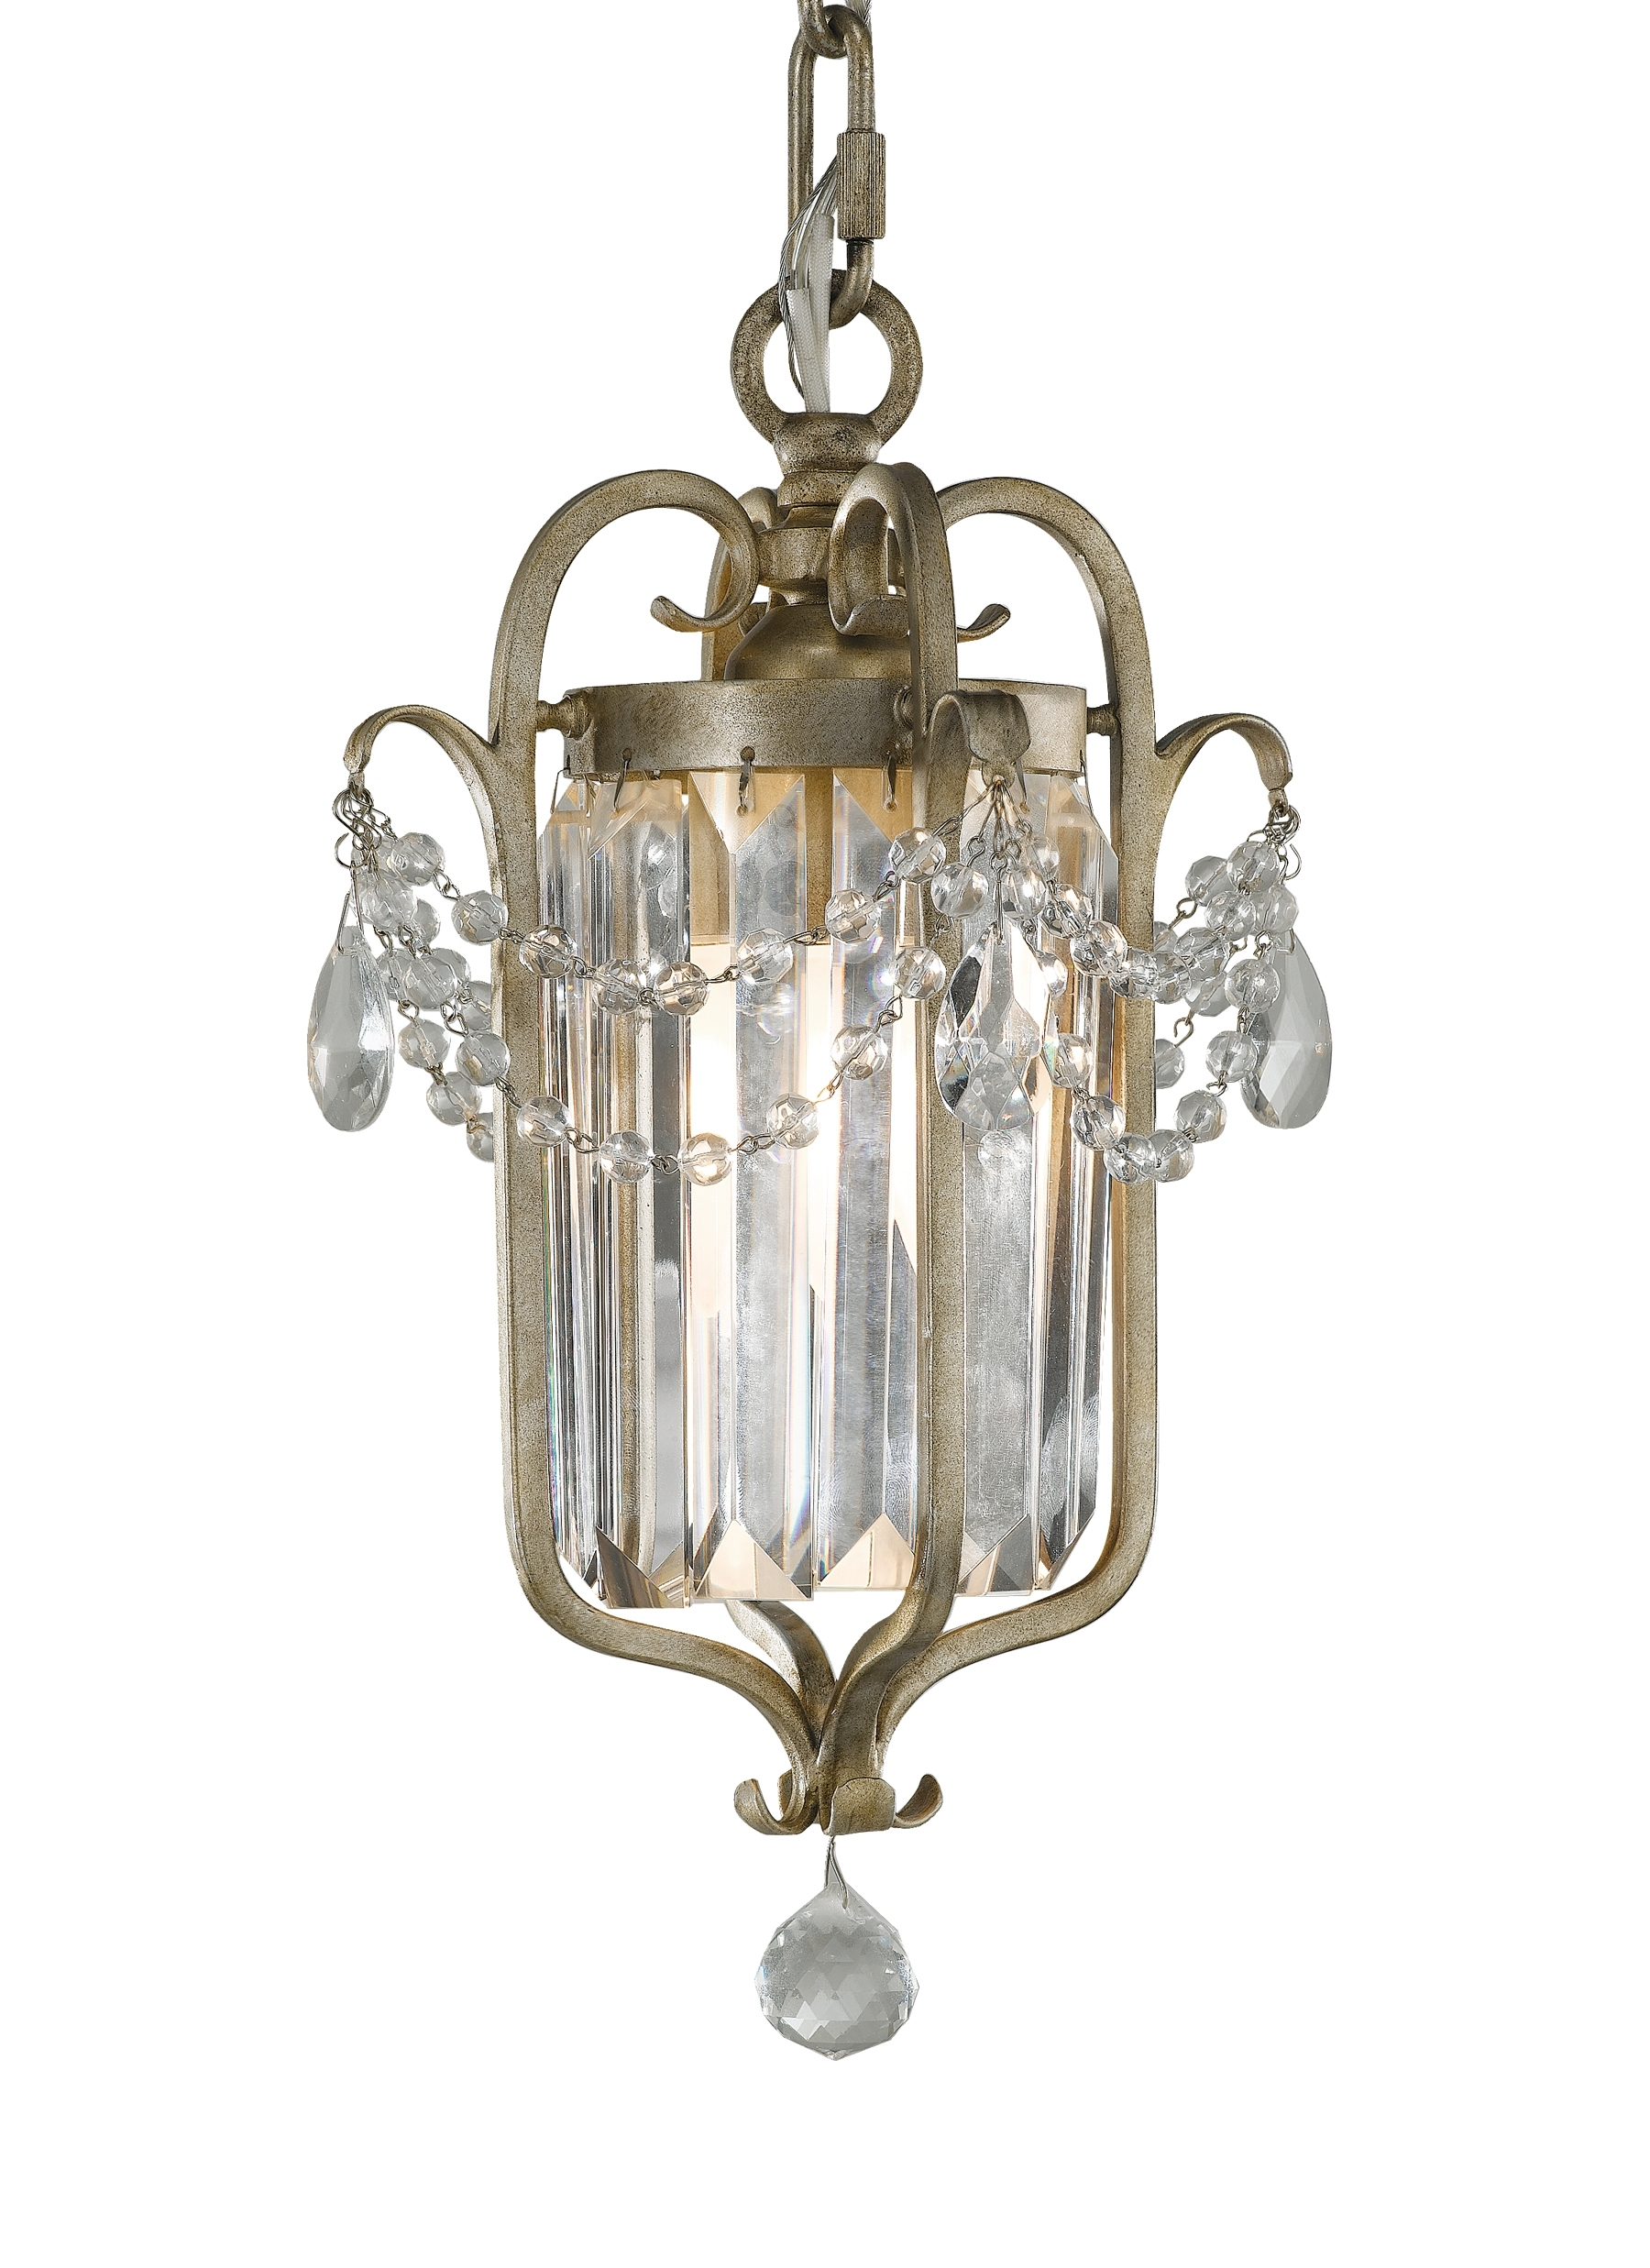 Gianna Mini Chandeliers Throughout Latest F2474/1Gs,1 – Light Mini Duo Chandelier,gilded Silver (View 5 of 15)